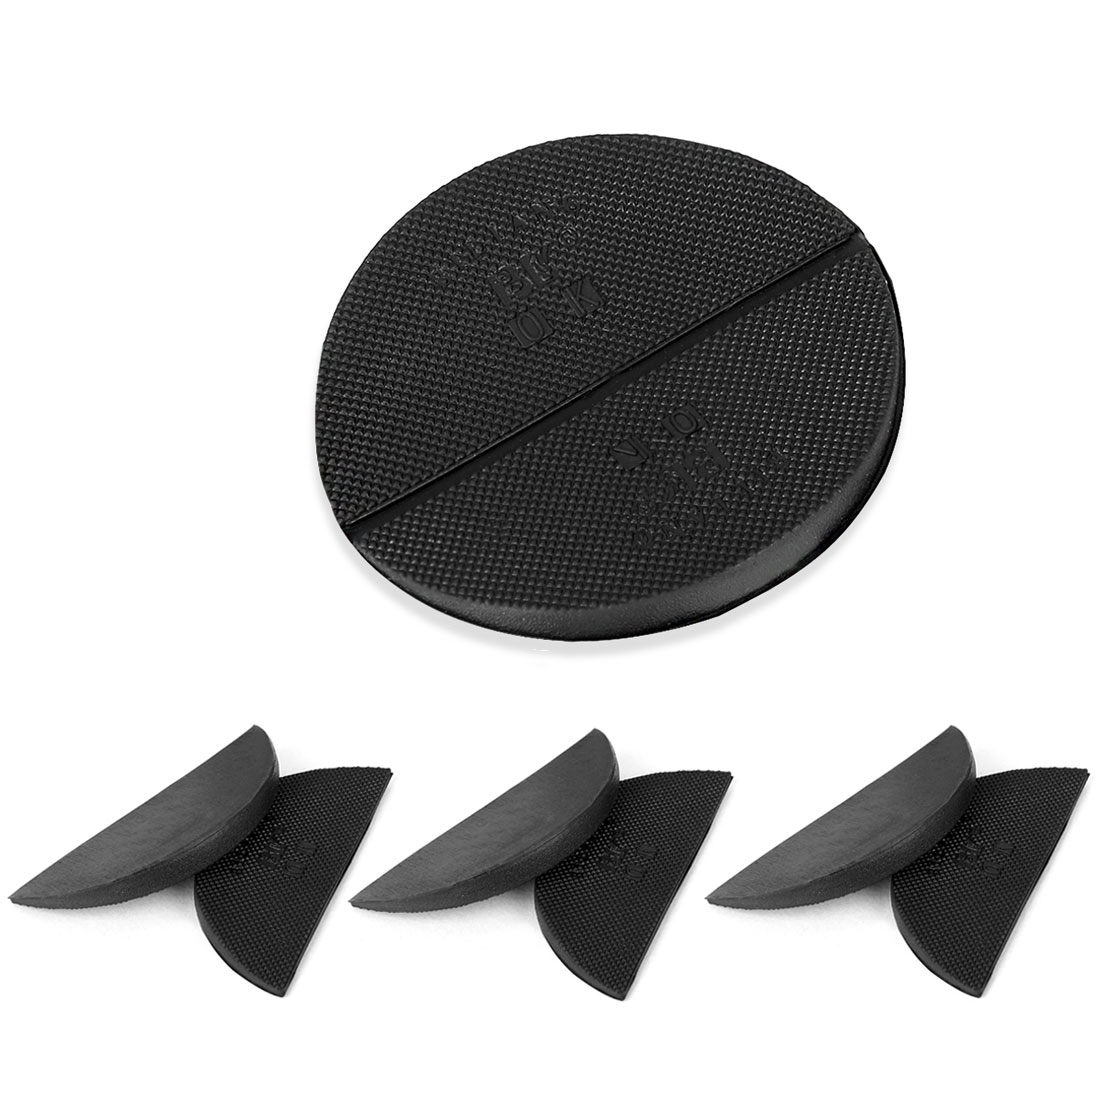 Shoes Boots Sole Heel Repair Pad Guard Plate Tap Protection Black 4 Pairs